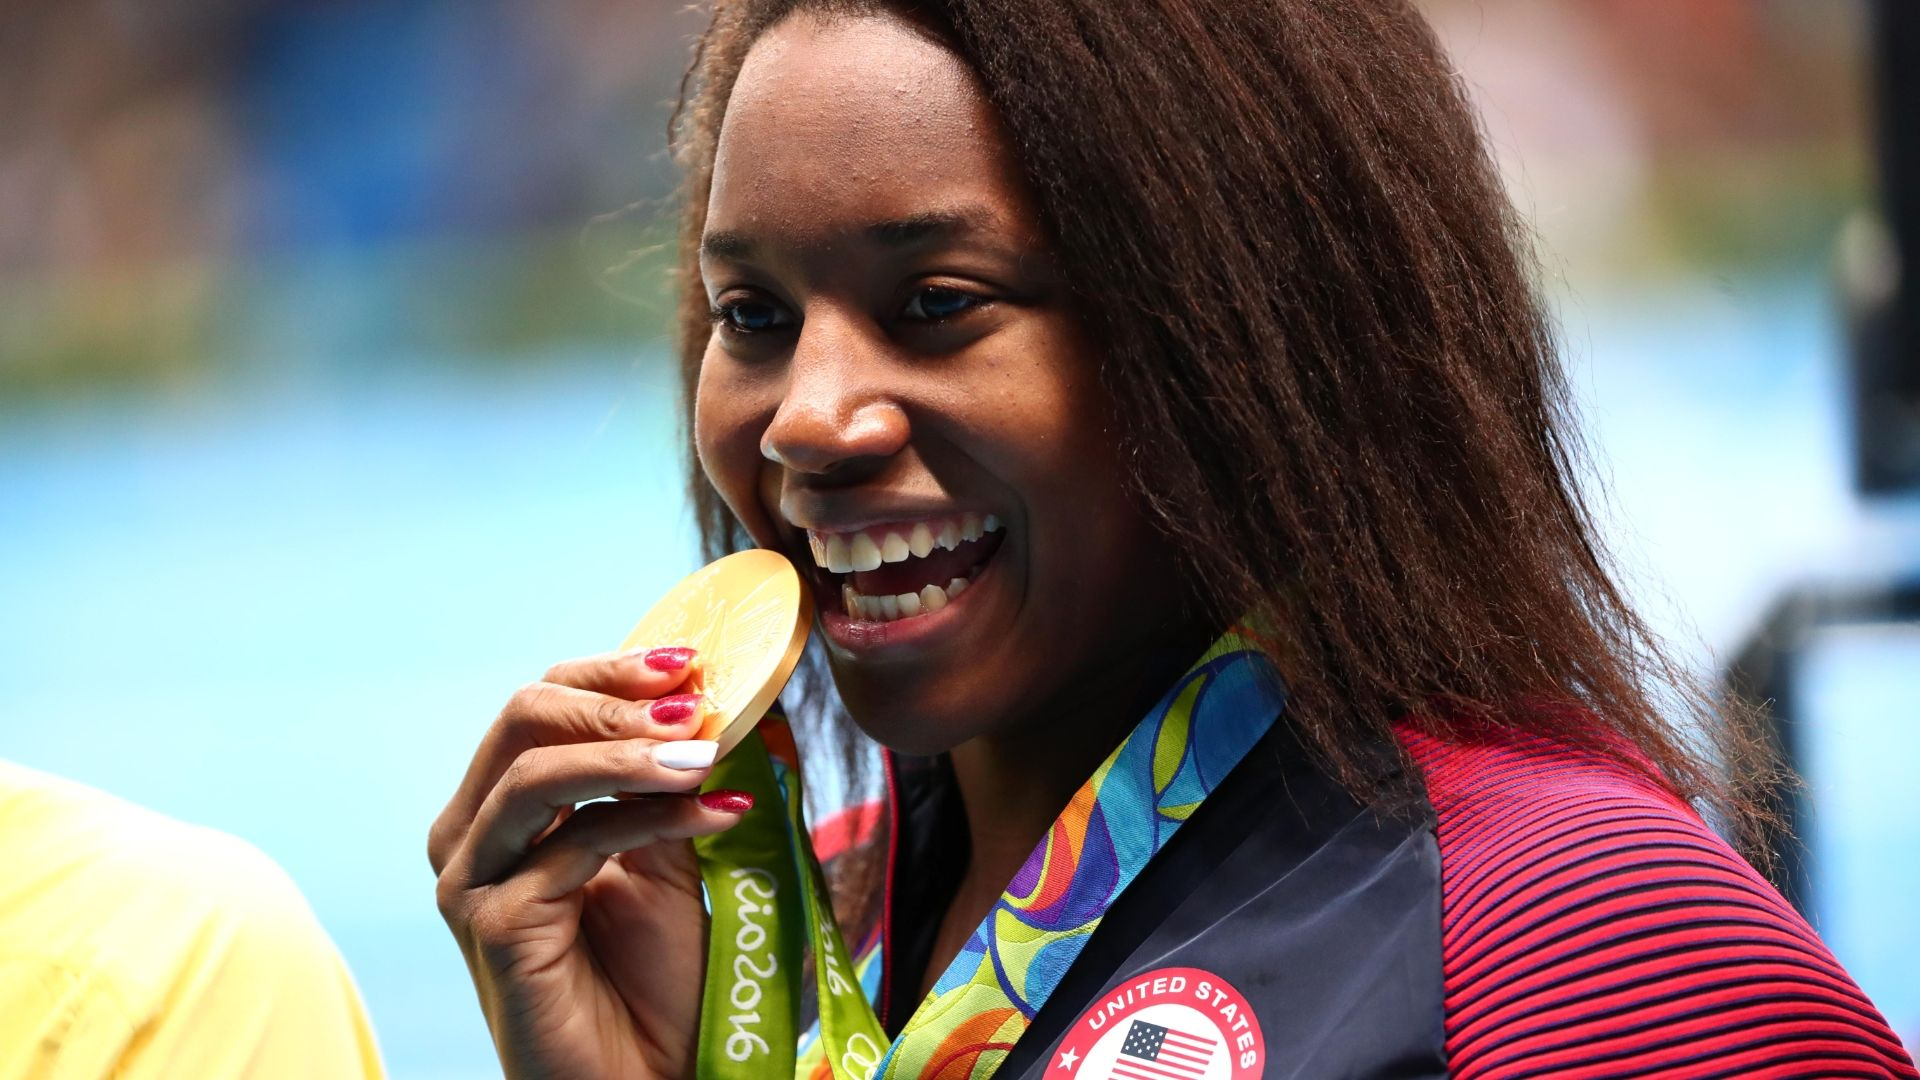 https://secure.espncdn.com/combiner/i?img=/media/motion/2016/0812/dm_160812_Jesse_Washington_on_Simone_Manuel/dm_160812_Jesse_Washington_on_Simone_Manuel.jpg